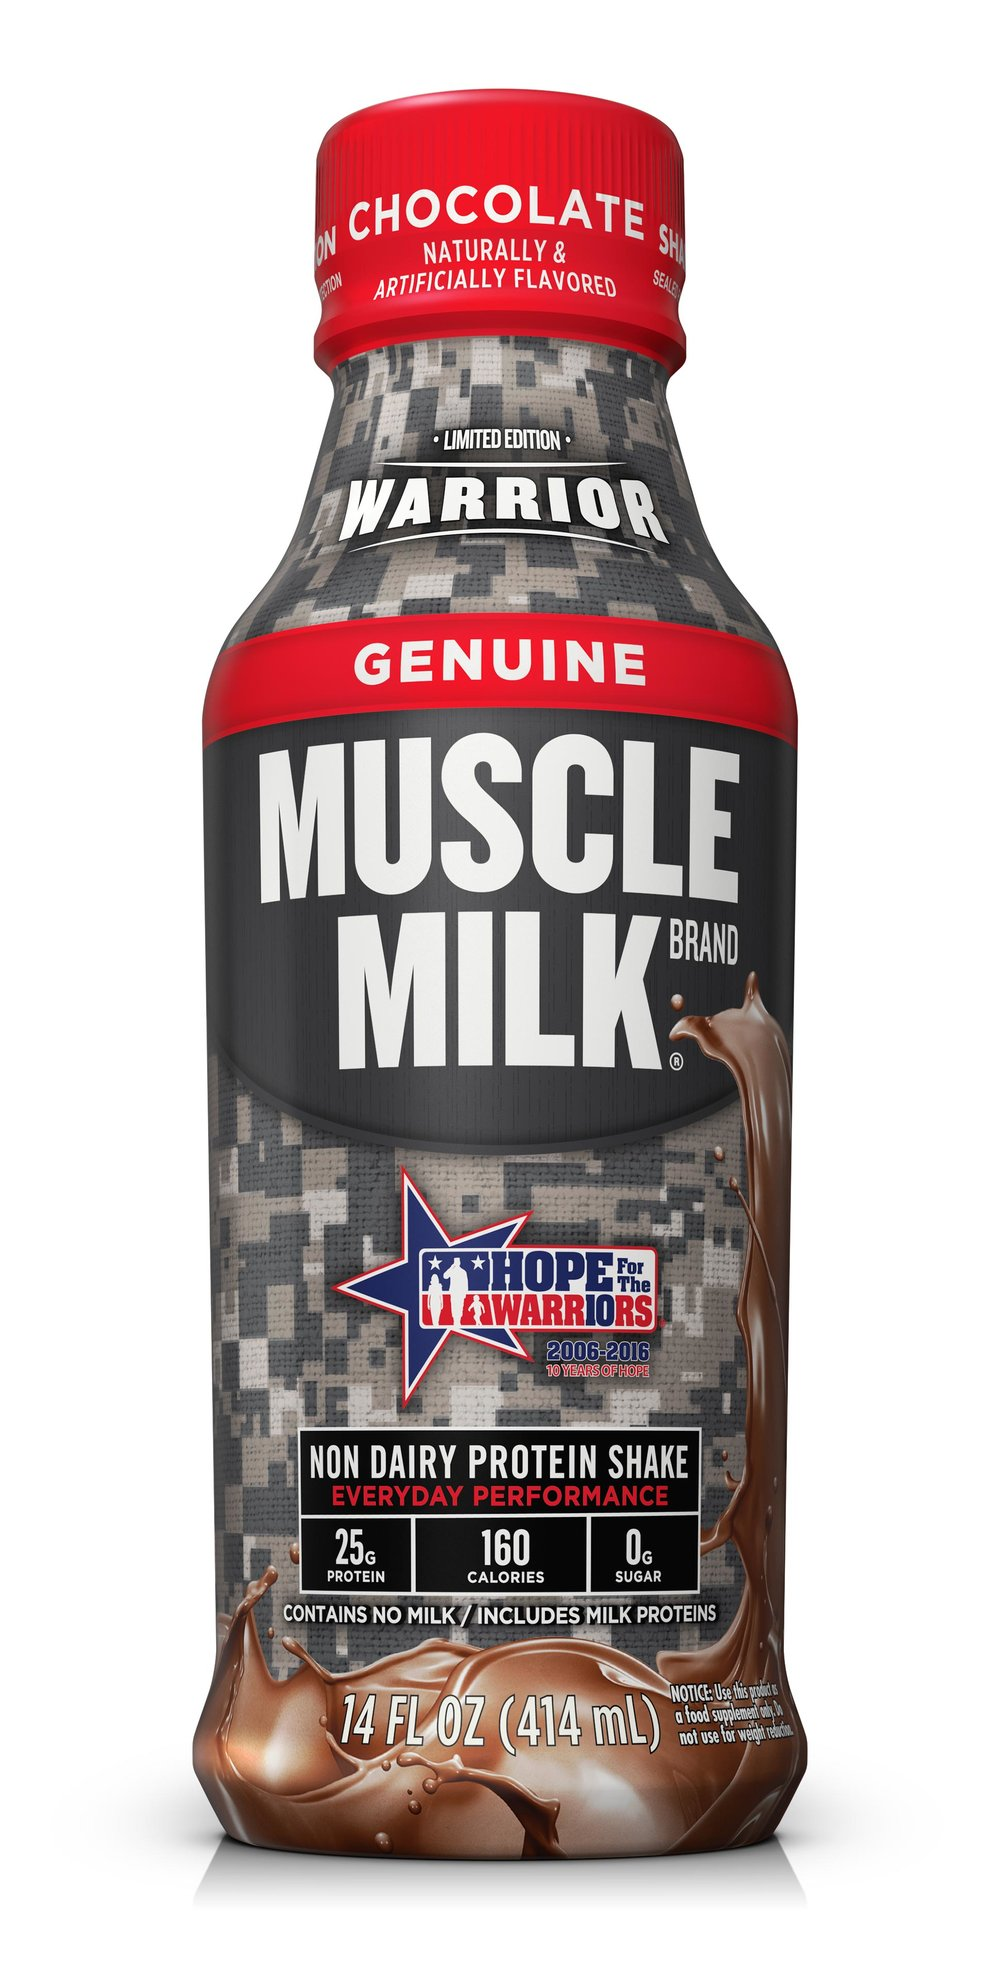 Muscle-Milk-Military14oz-Chocolate-web.jpg